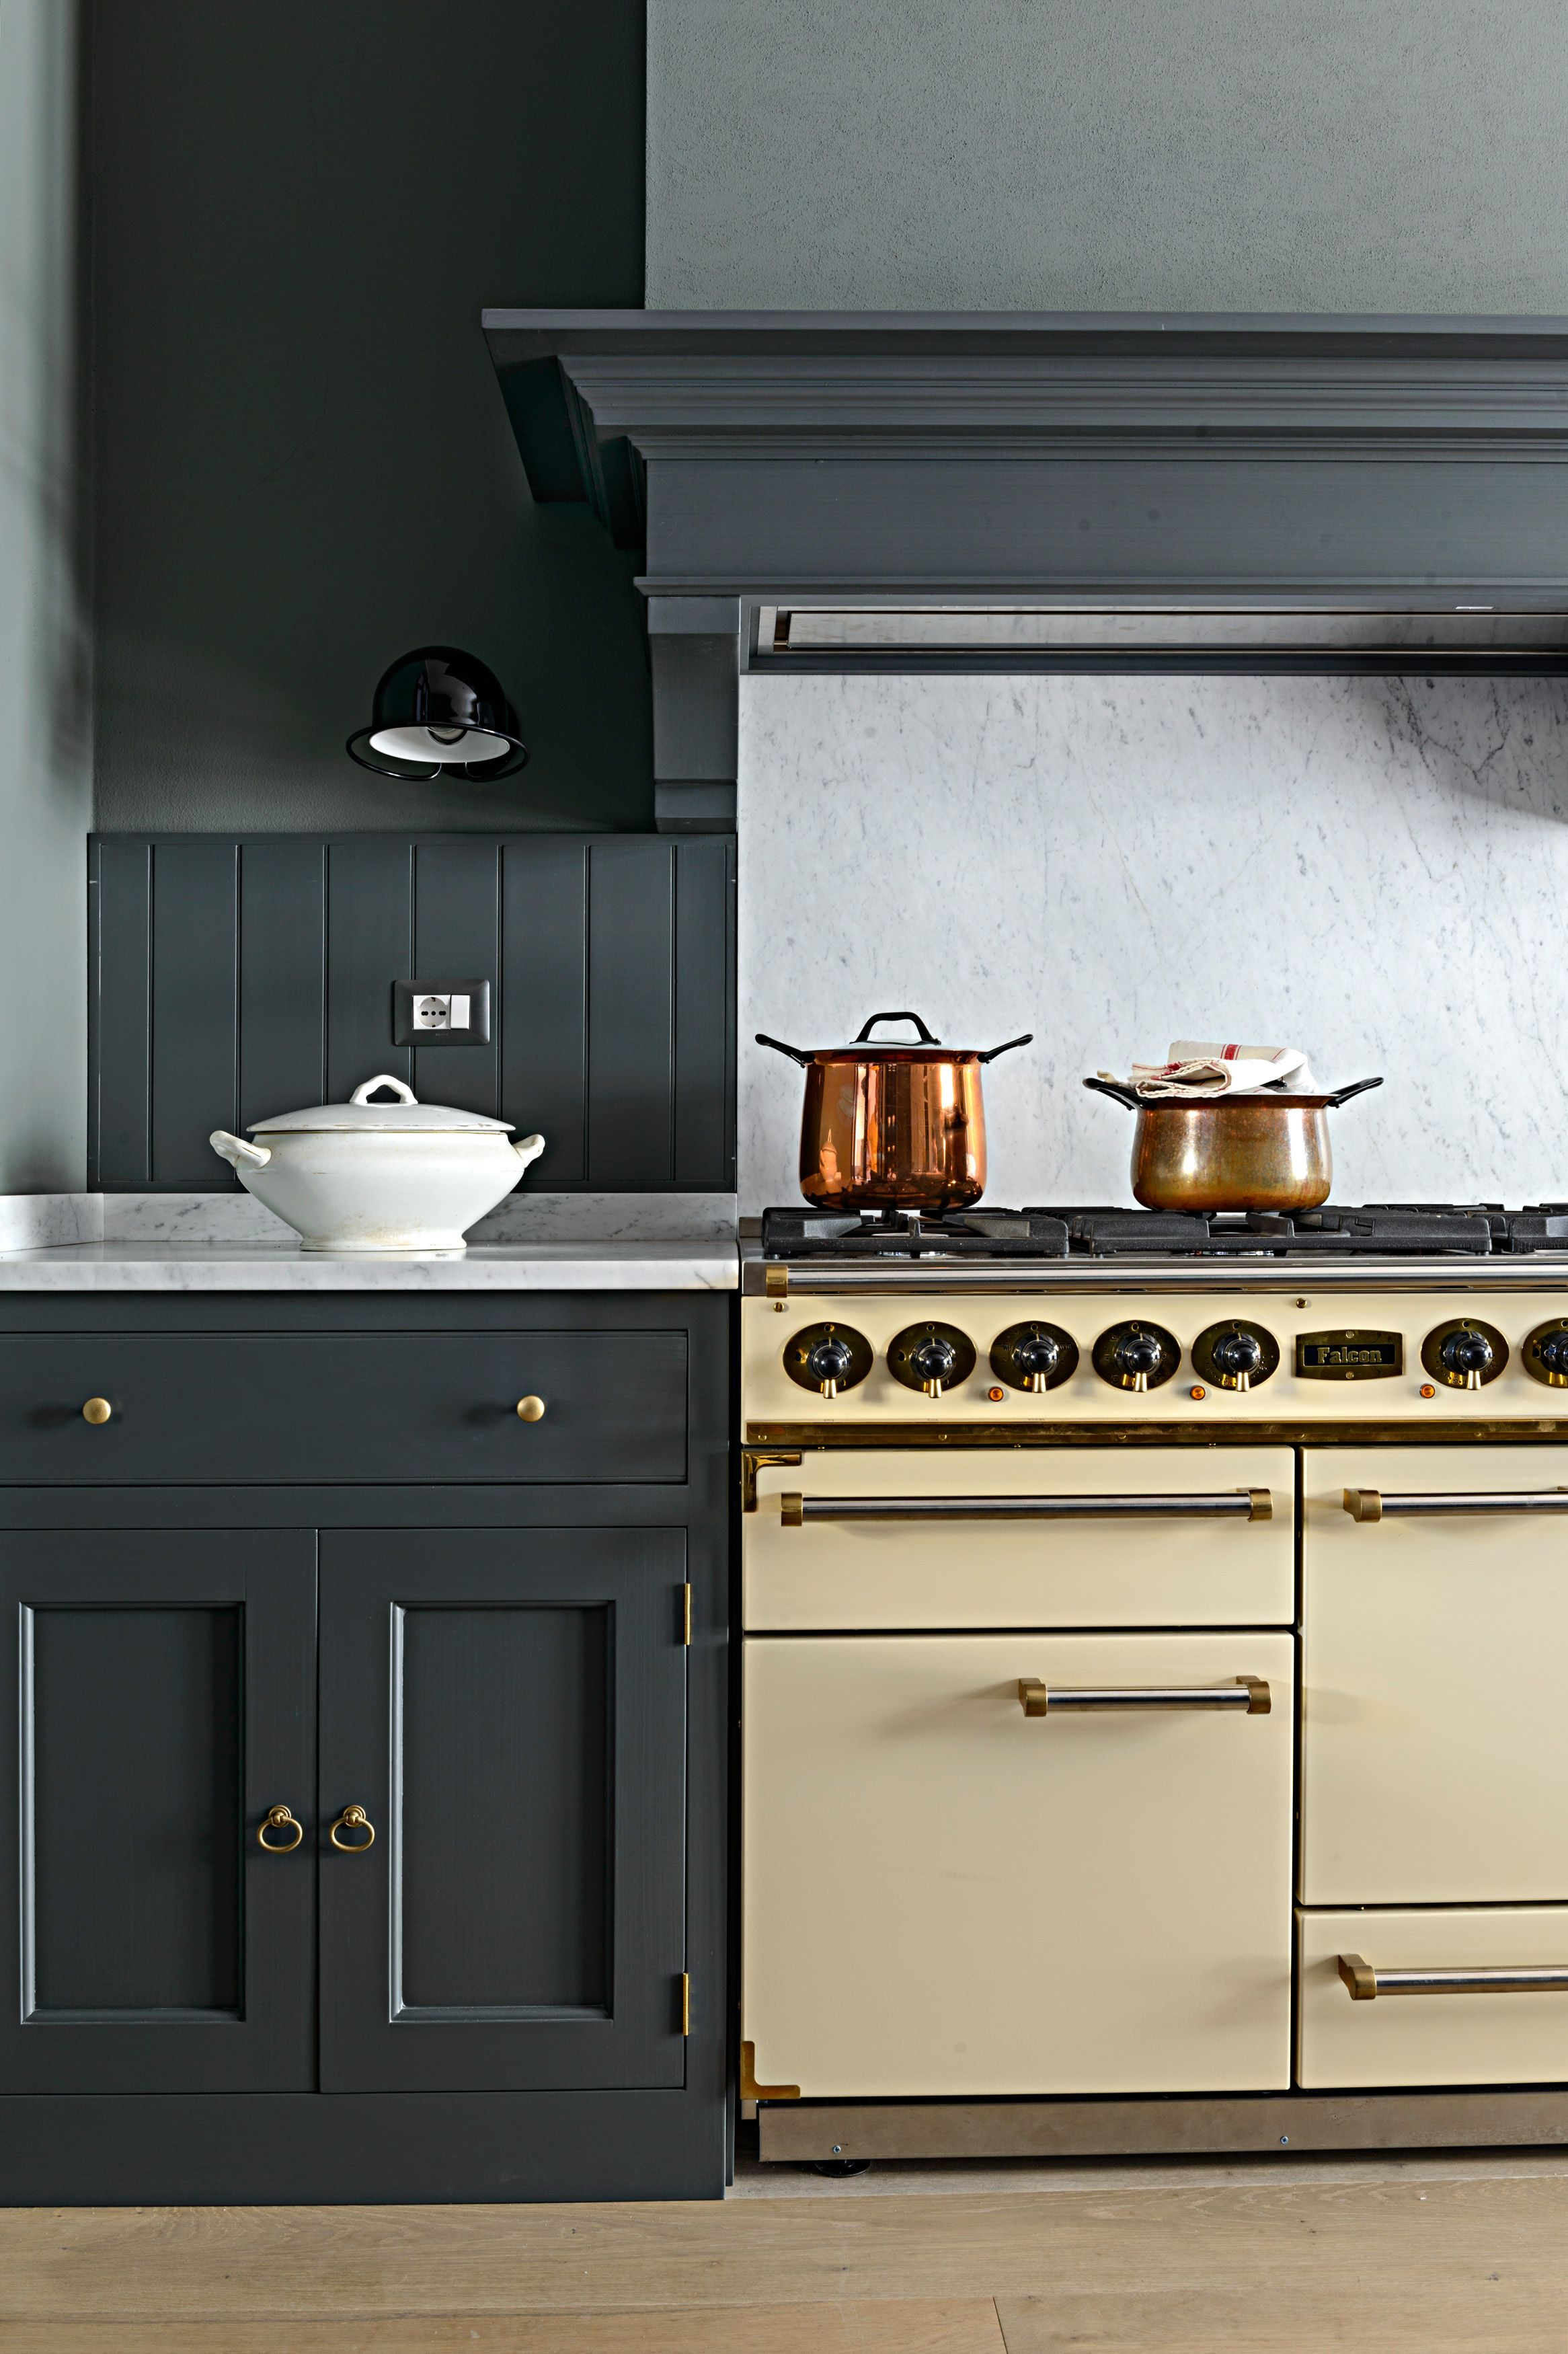 Cucina A Gas Stile Country Cucina In Stile Country Inglese Monticello. Boiserie A